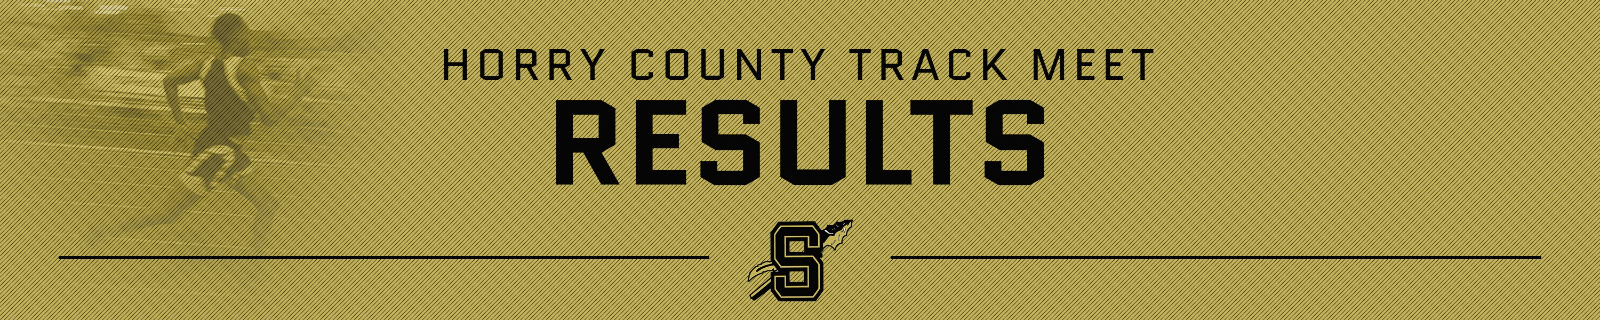 SHS Horry County Track Meet Results